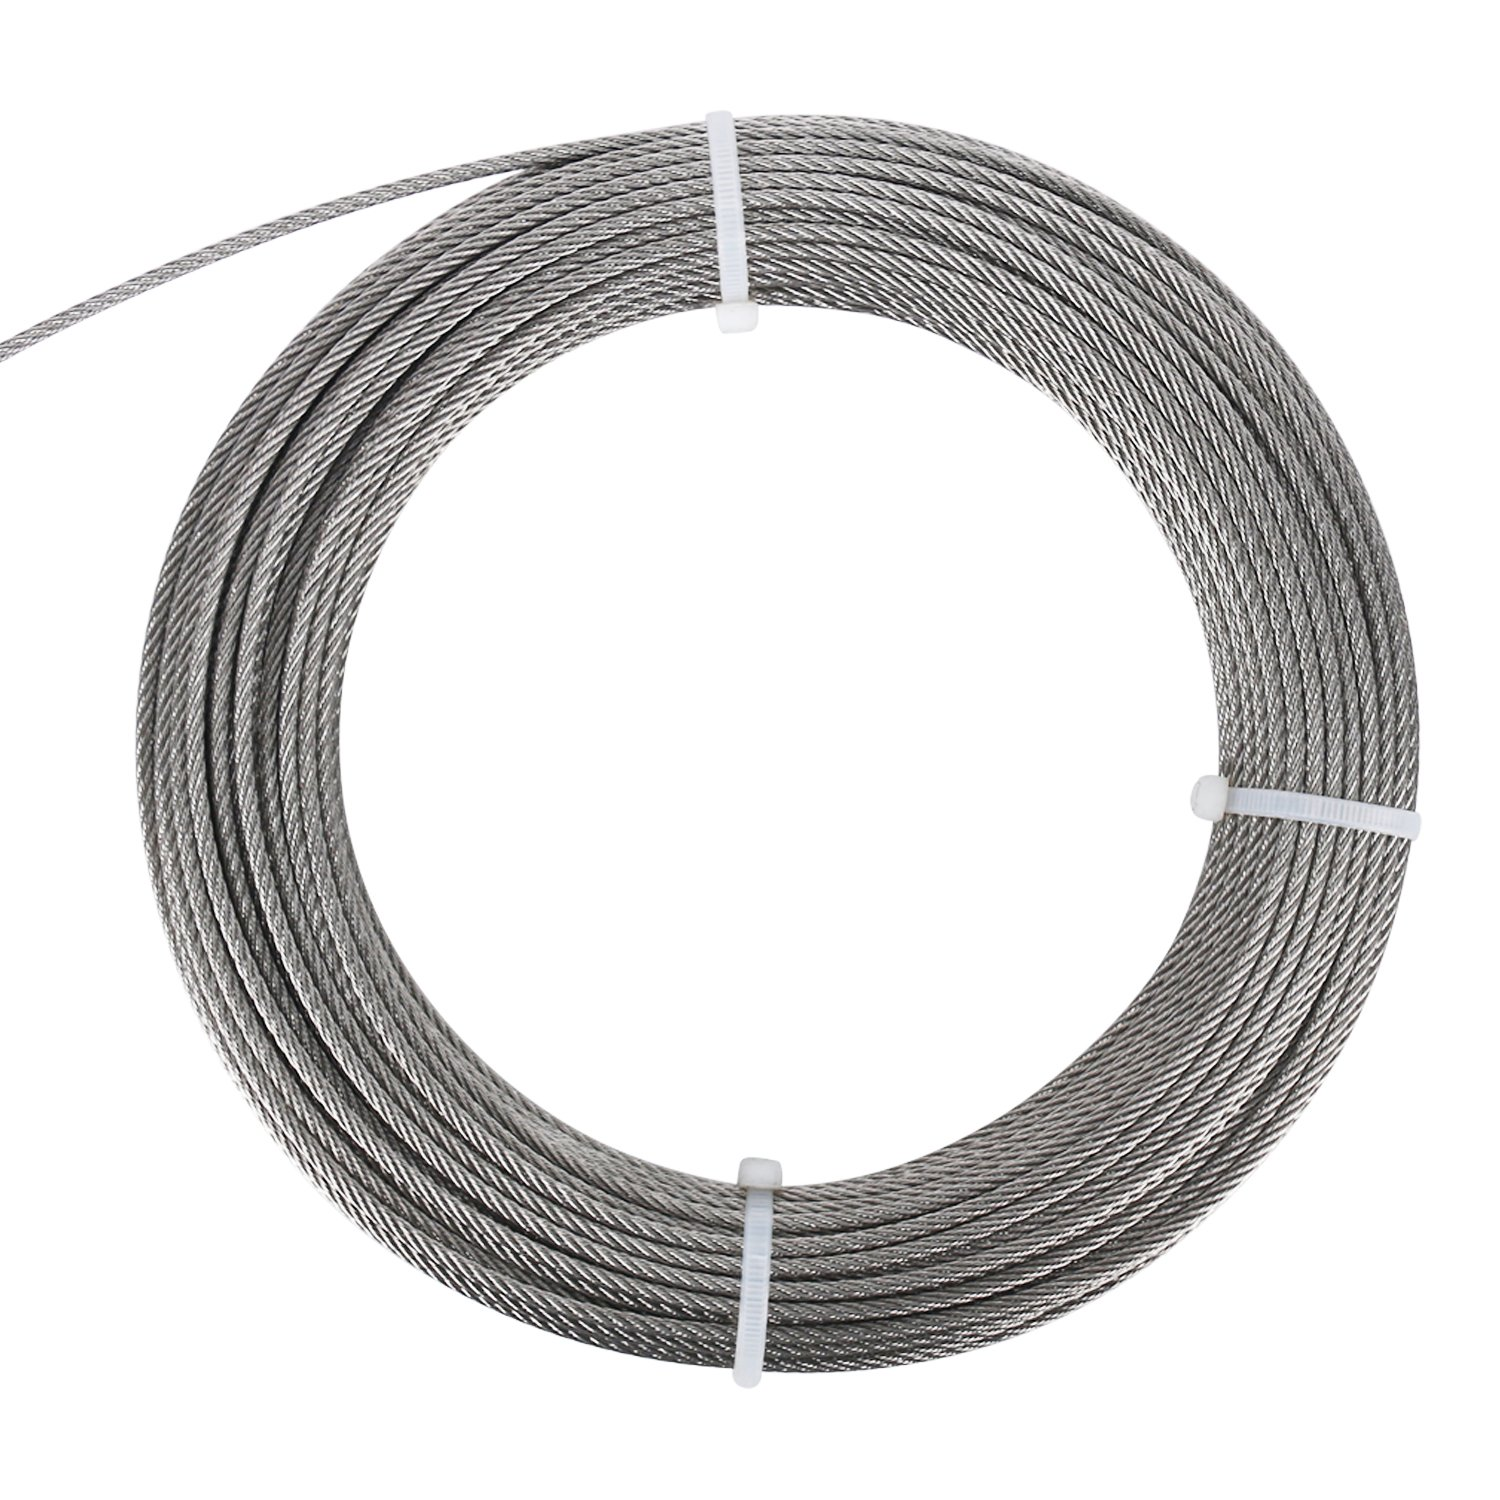 DasMarine Stainless Aircraft Steel Wire Rope Cable for Railing,Decking, DIY Balustrade, 1/8Inch,7x7 (1/8Inch, 7x7, 164FT) by DasMarine